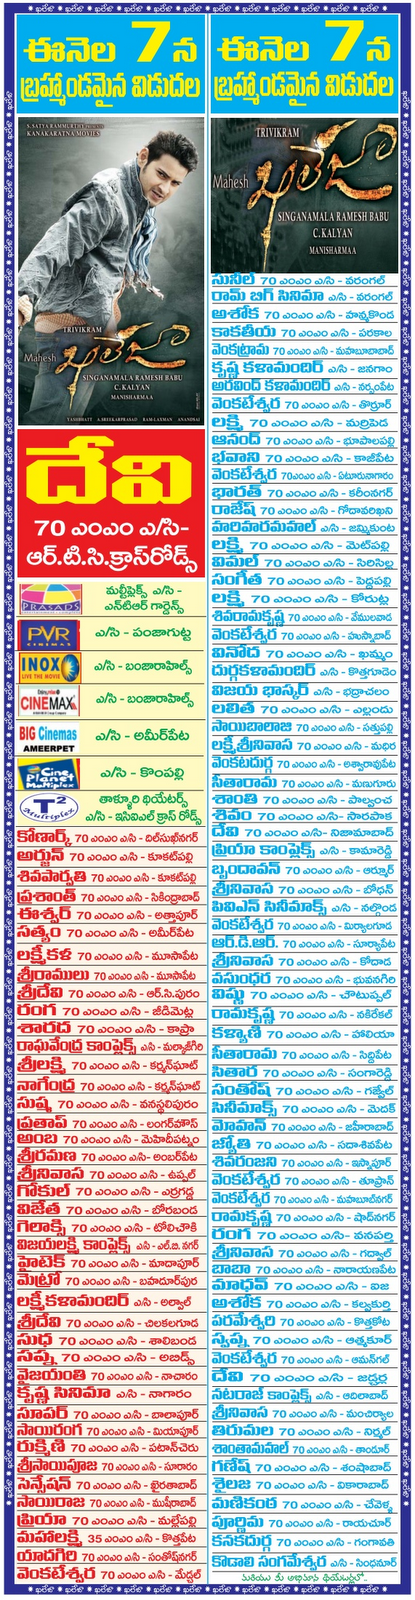 Khaleja theaters list